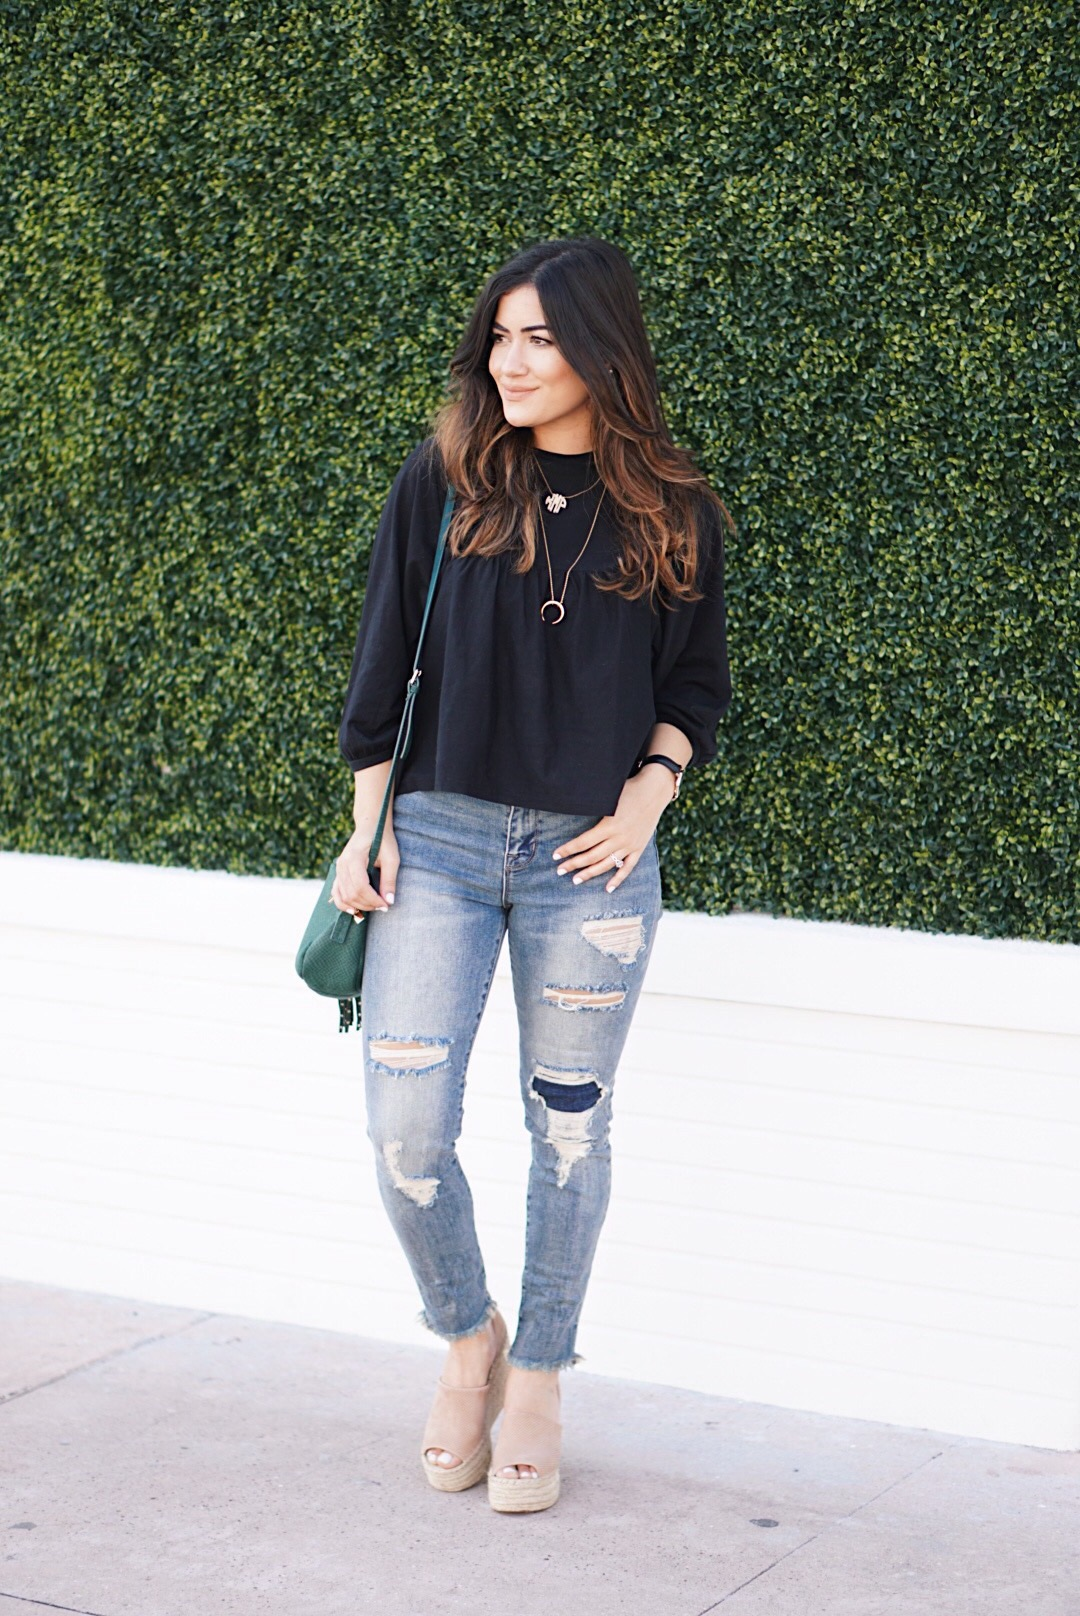 Here's Why I'm loving the Raw Hem Jean Trend